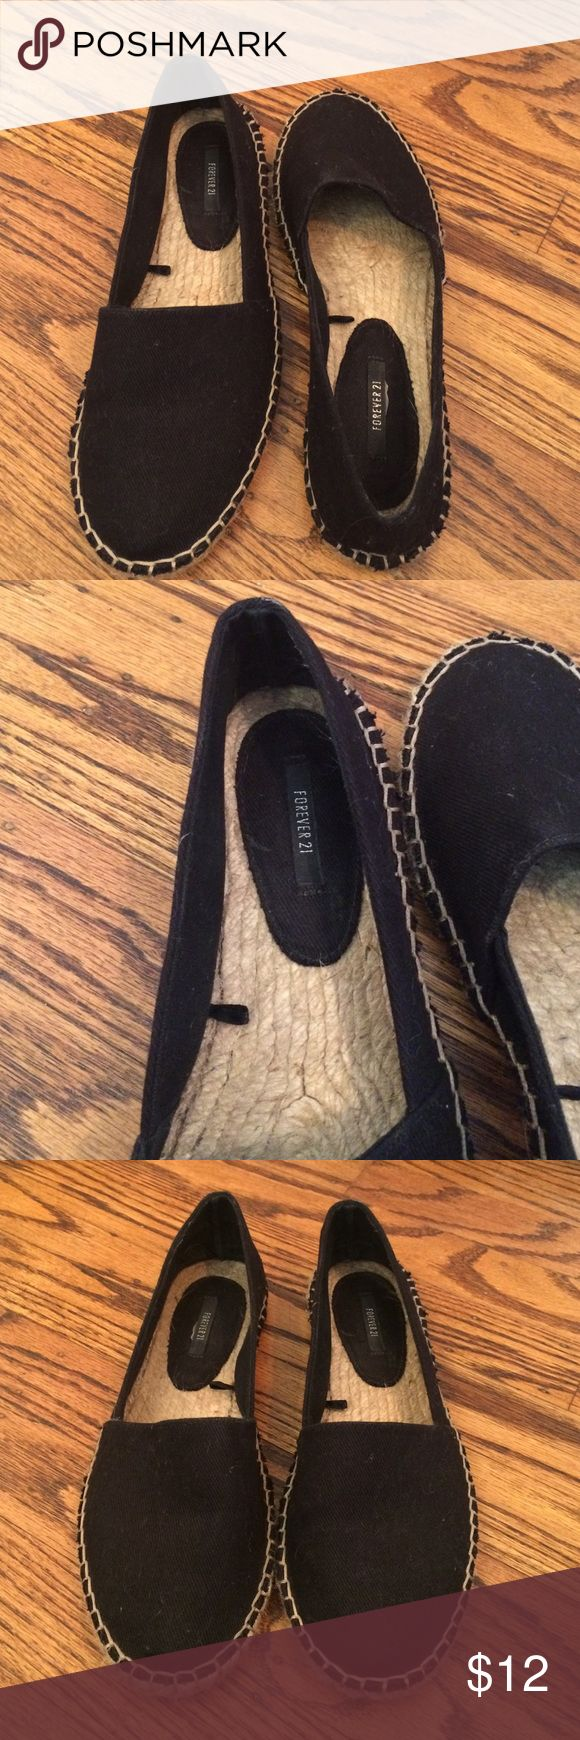 Espadrille Flats Black espadrille flats. Size 8. Excellent used condition. Worn just a few times Forever 21 Shoes Espadrilles